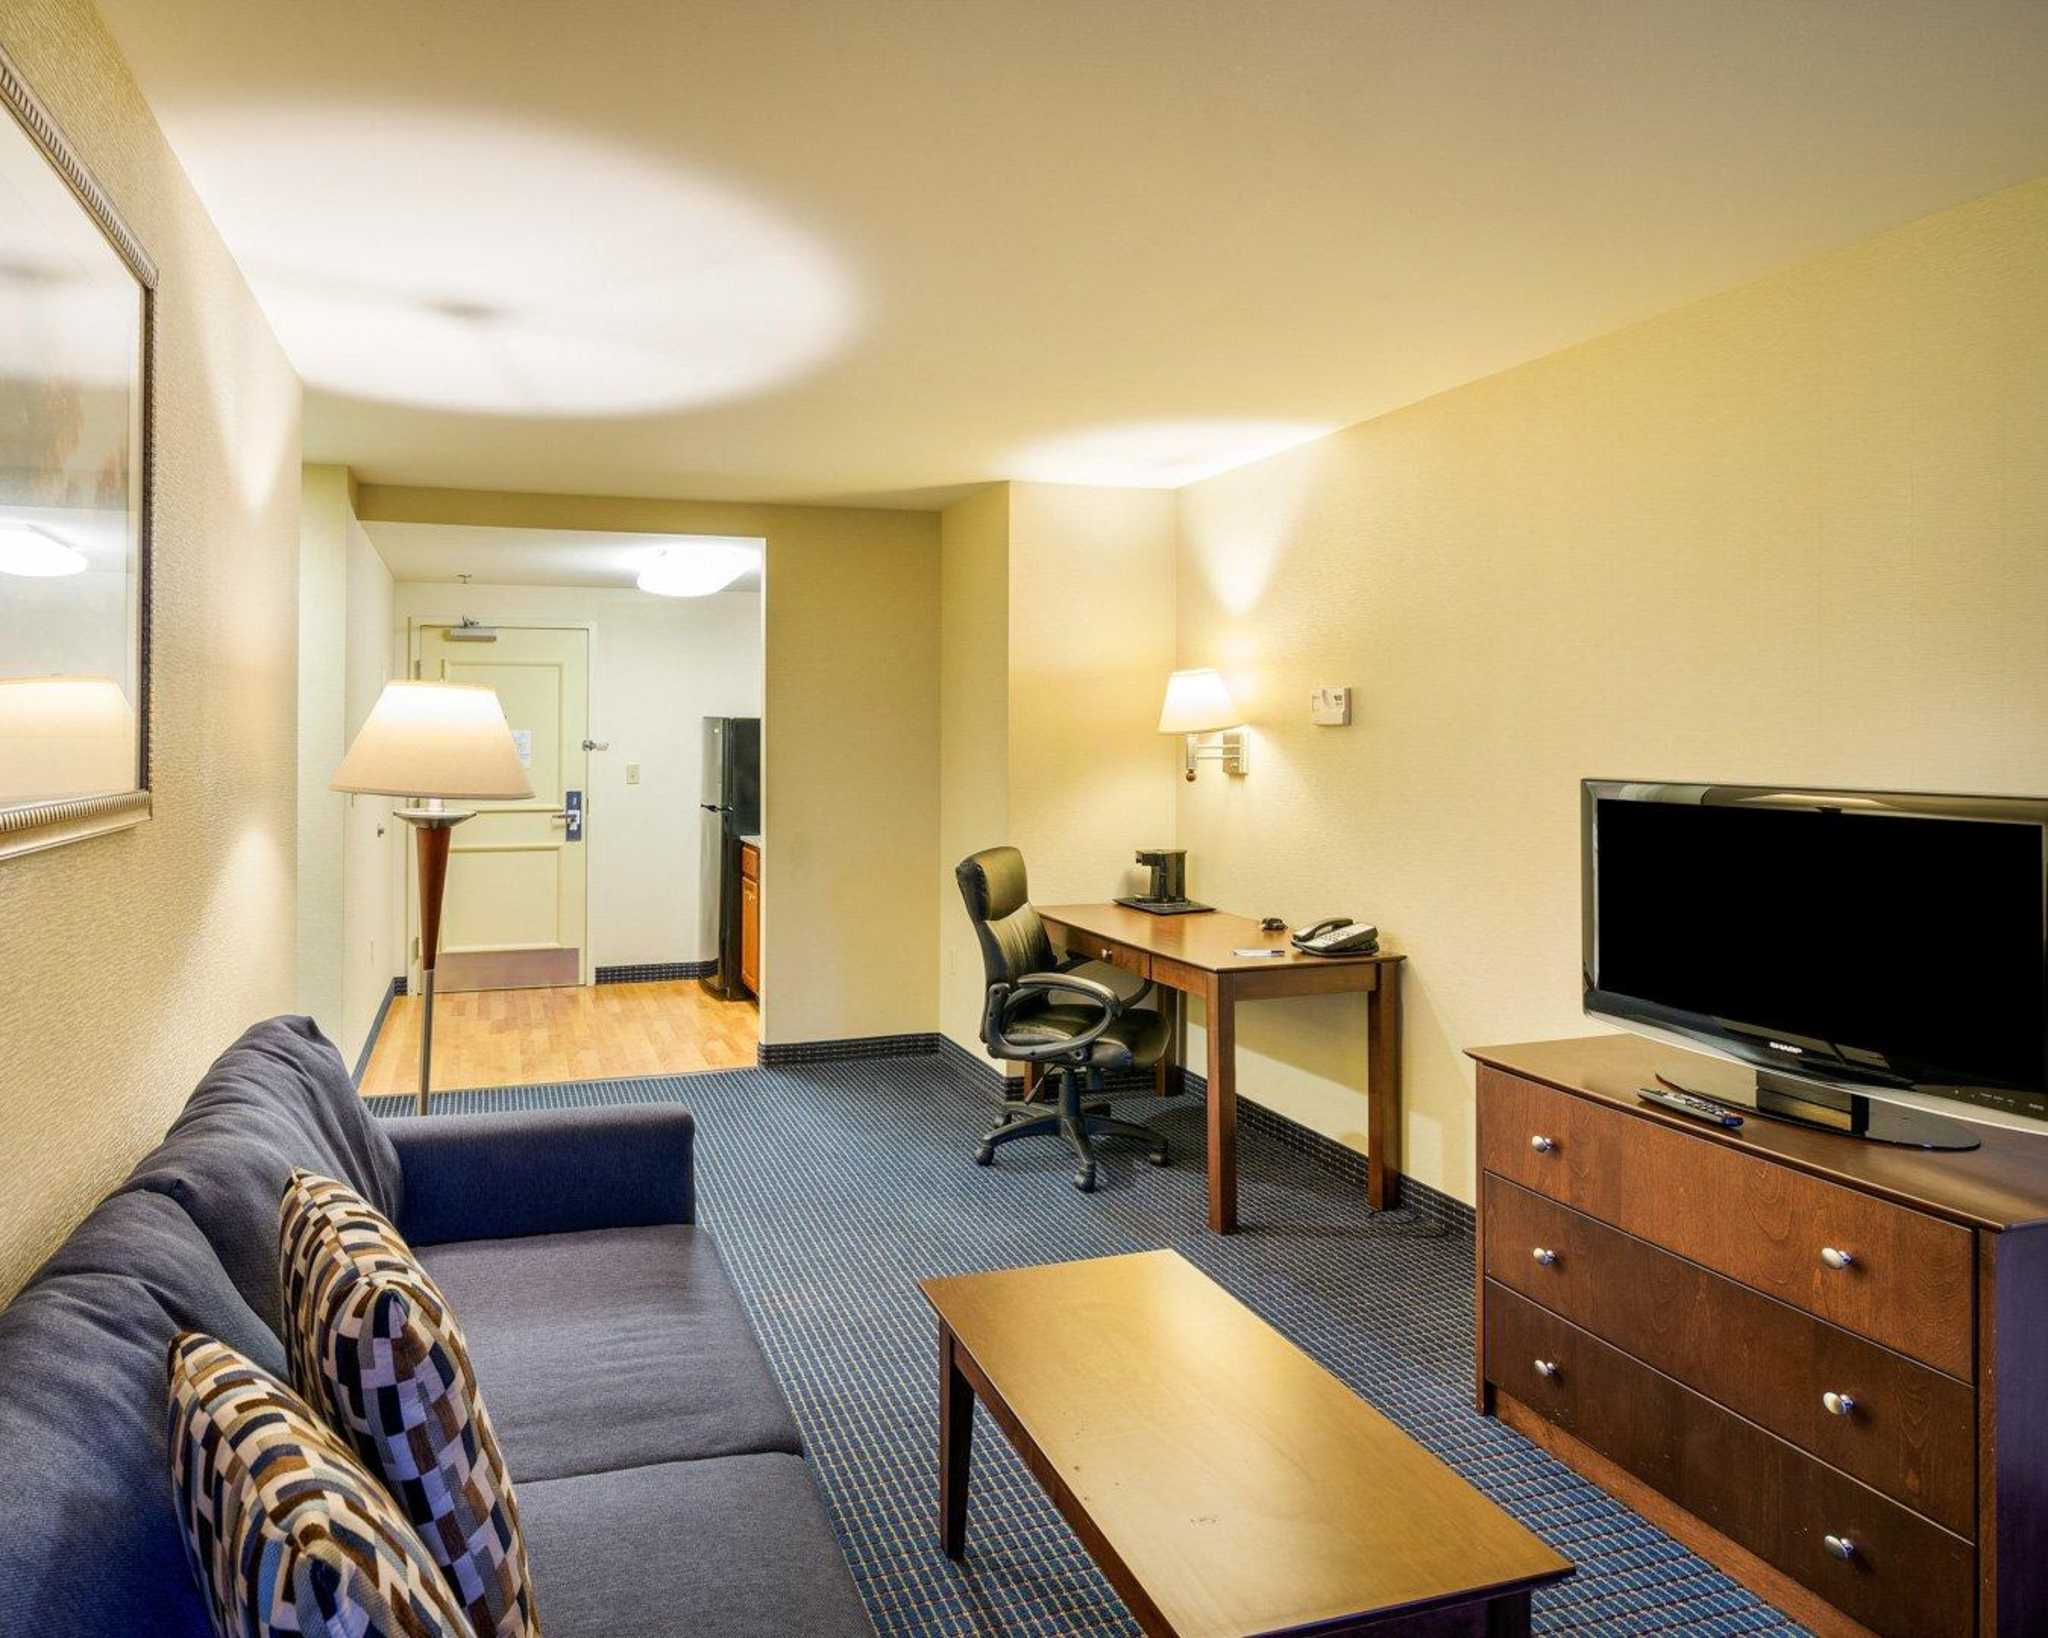 MainStay Suites image 15